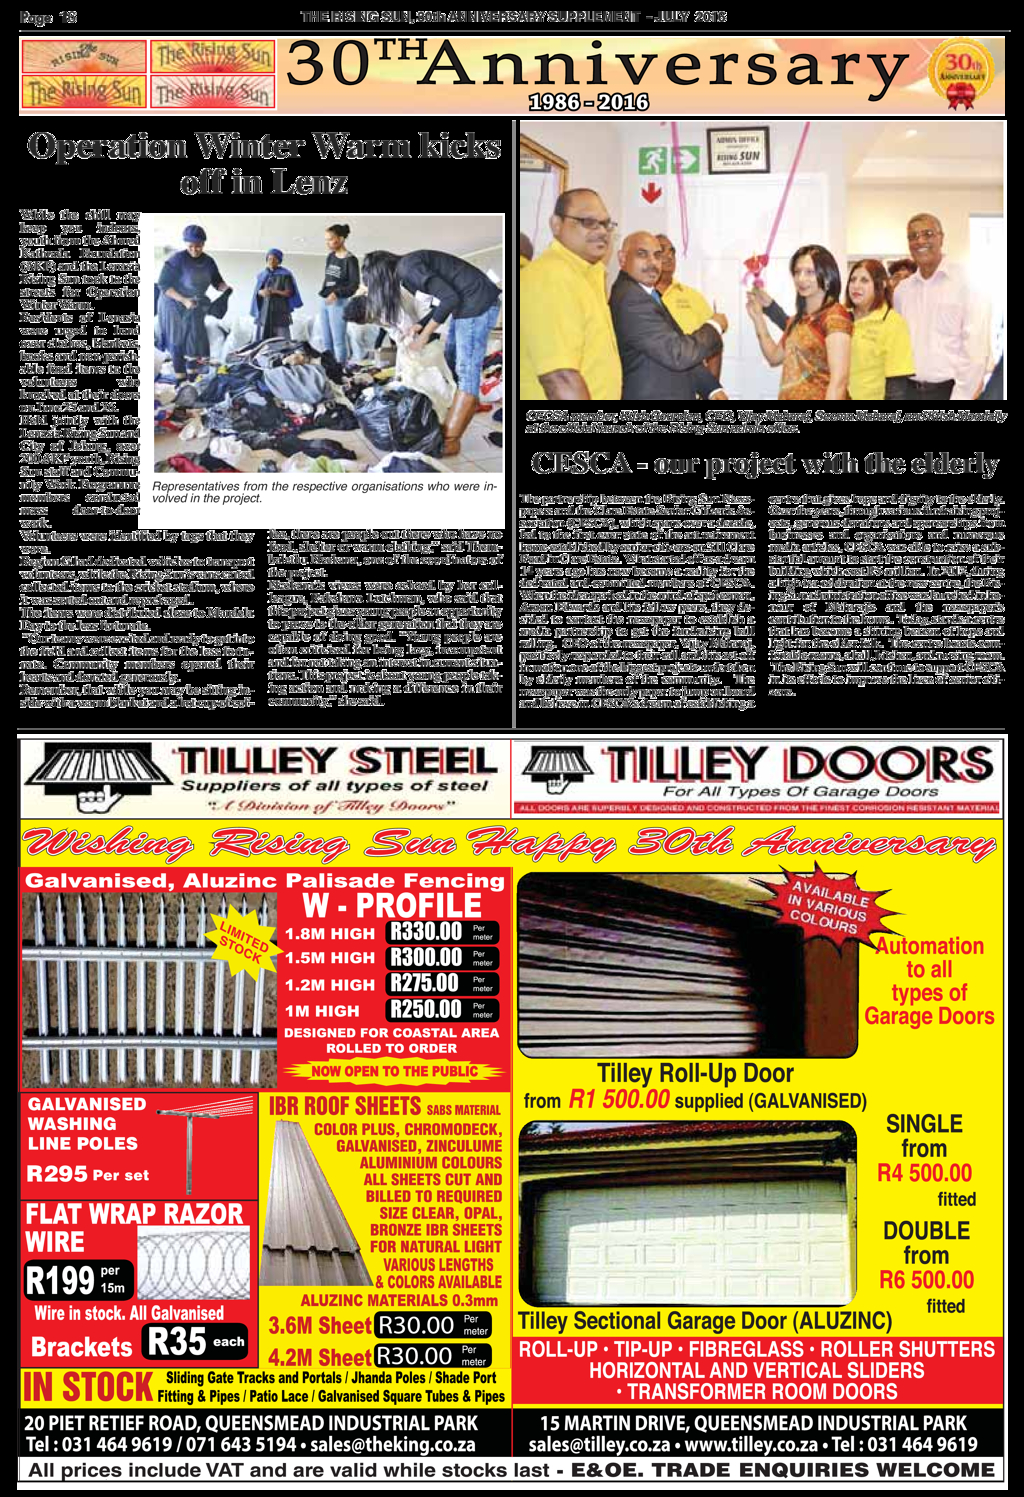 celebrating-our-30th-anniversary-epapers-page-16